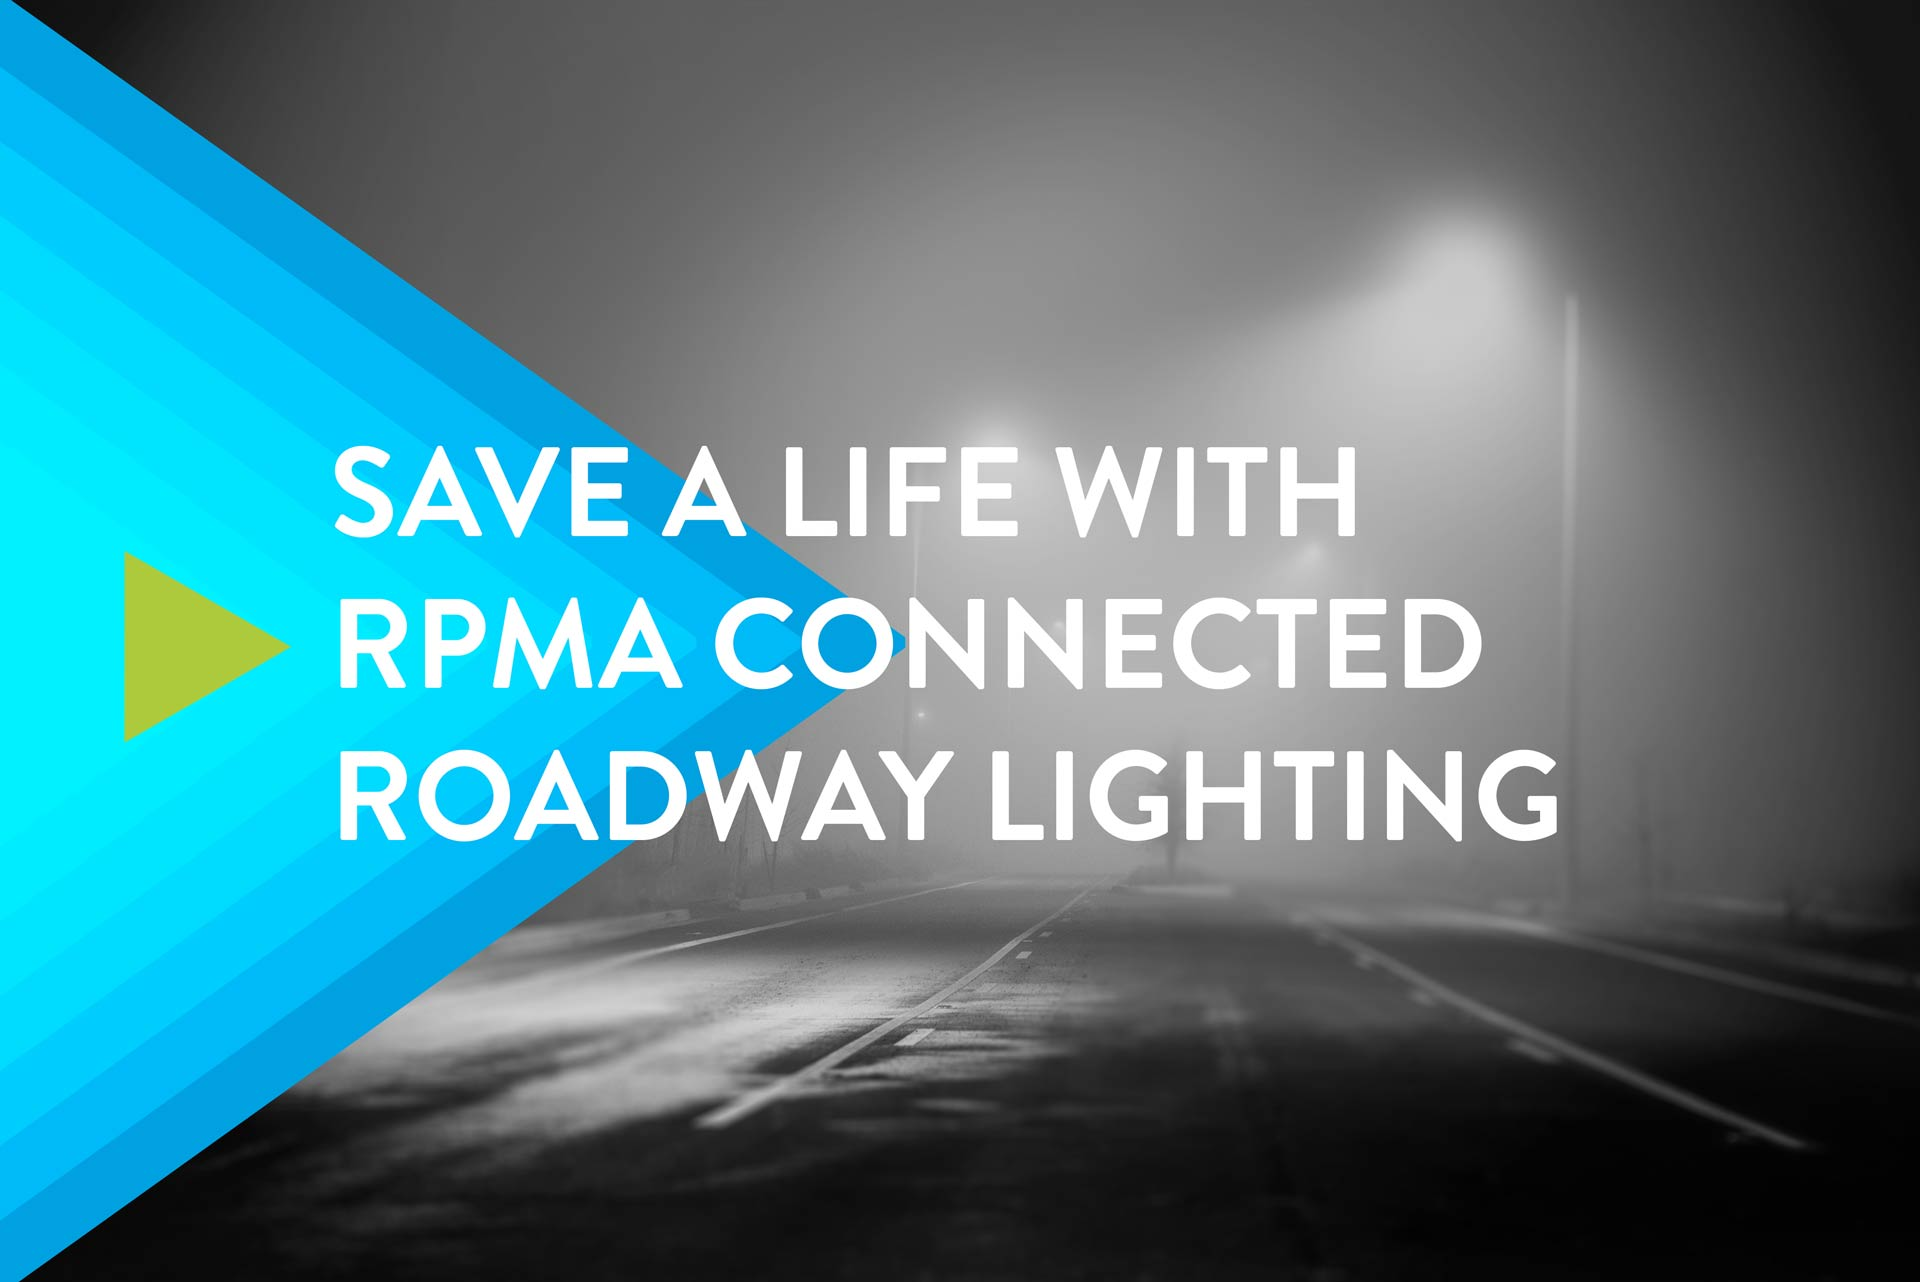 Rpma technology ingenu save a life with rpma connected roadway lighting fandeluxe Choice Image